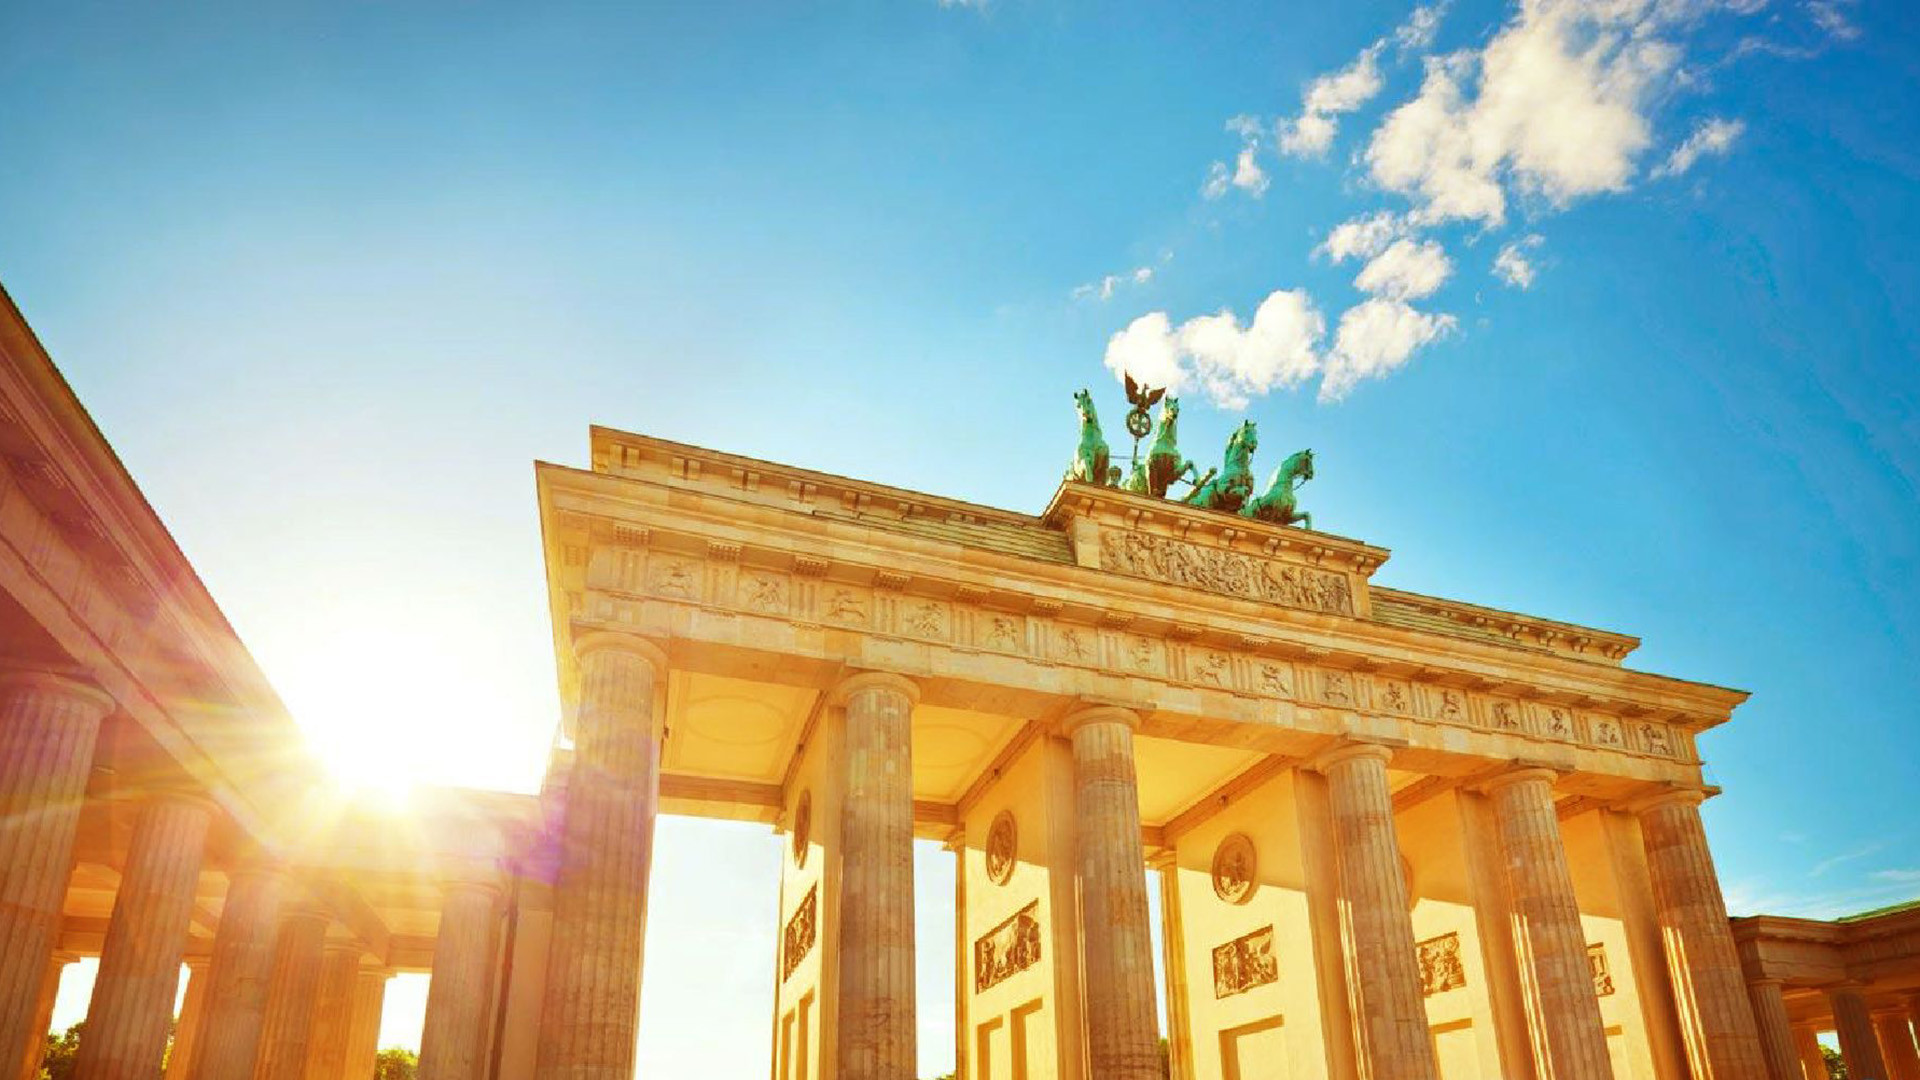 Res: 1920x1080, Brandenburg Gate Wallpapers 13 - 1920 X 1080